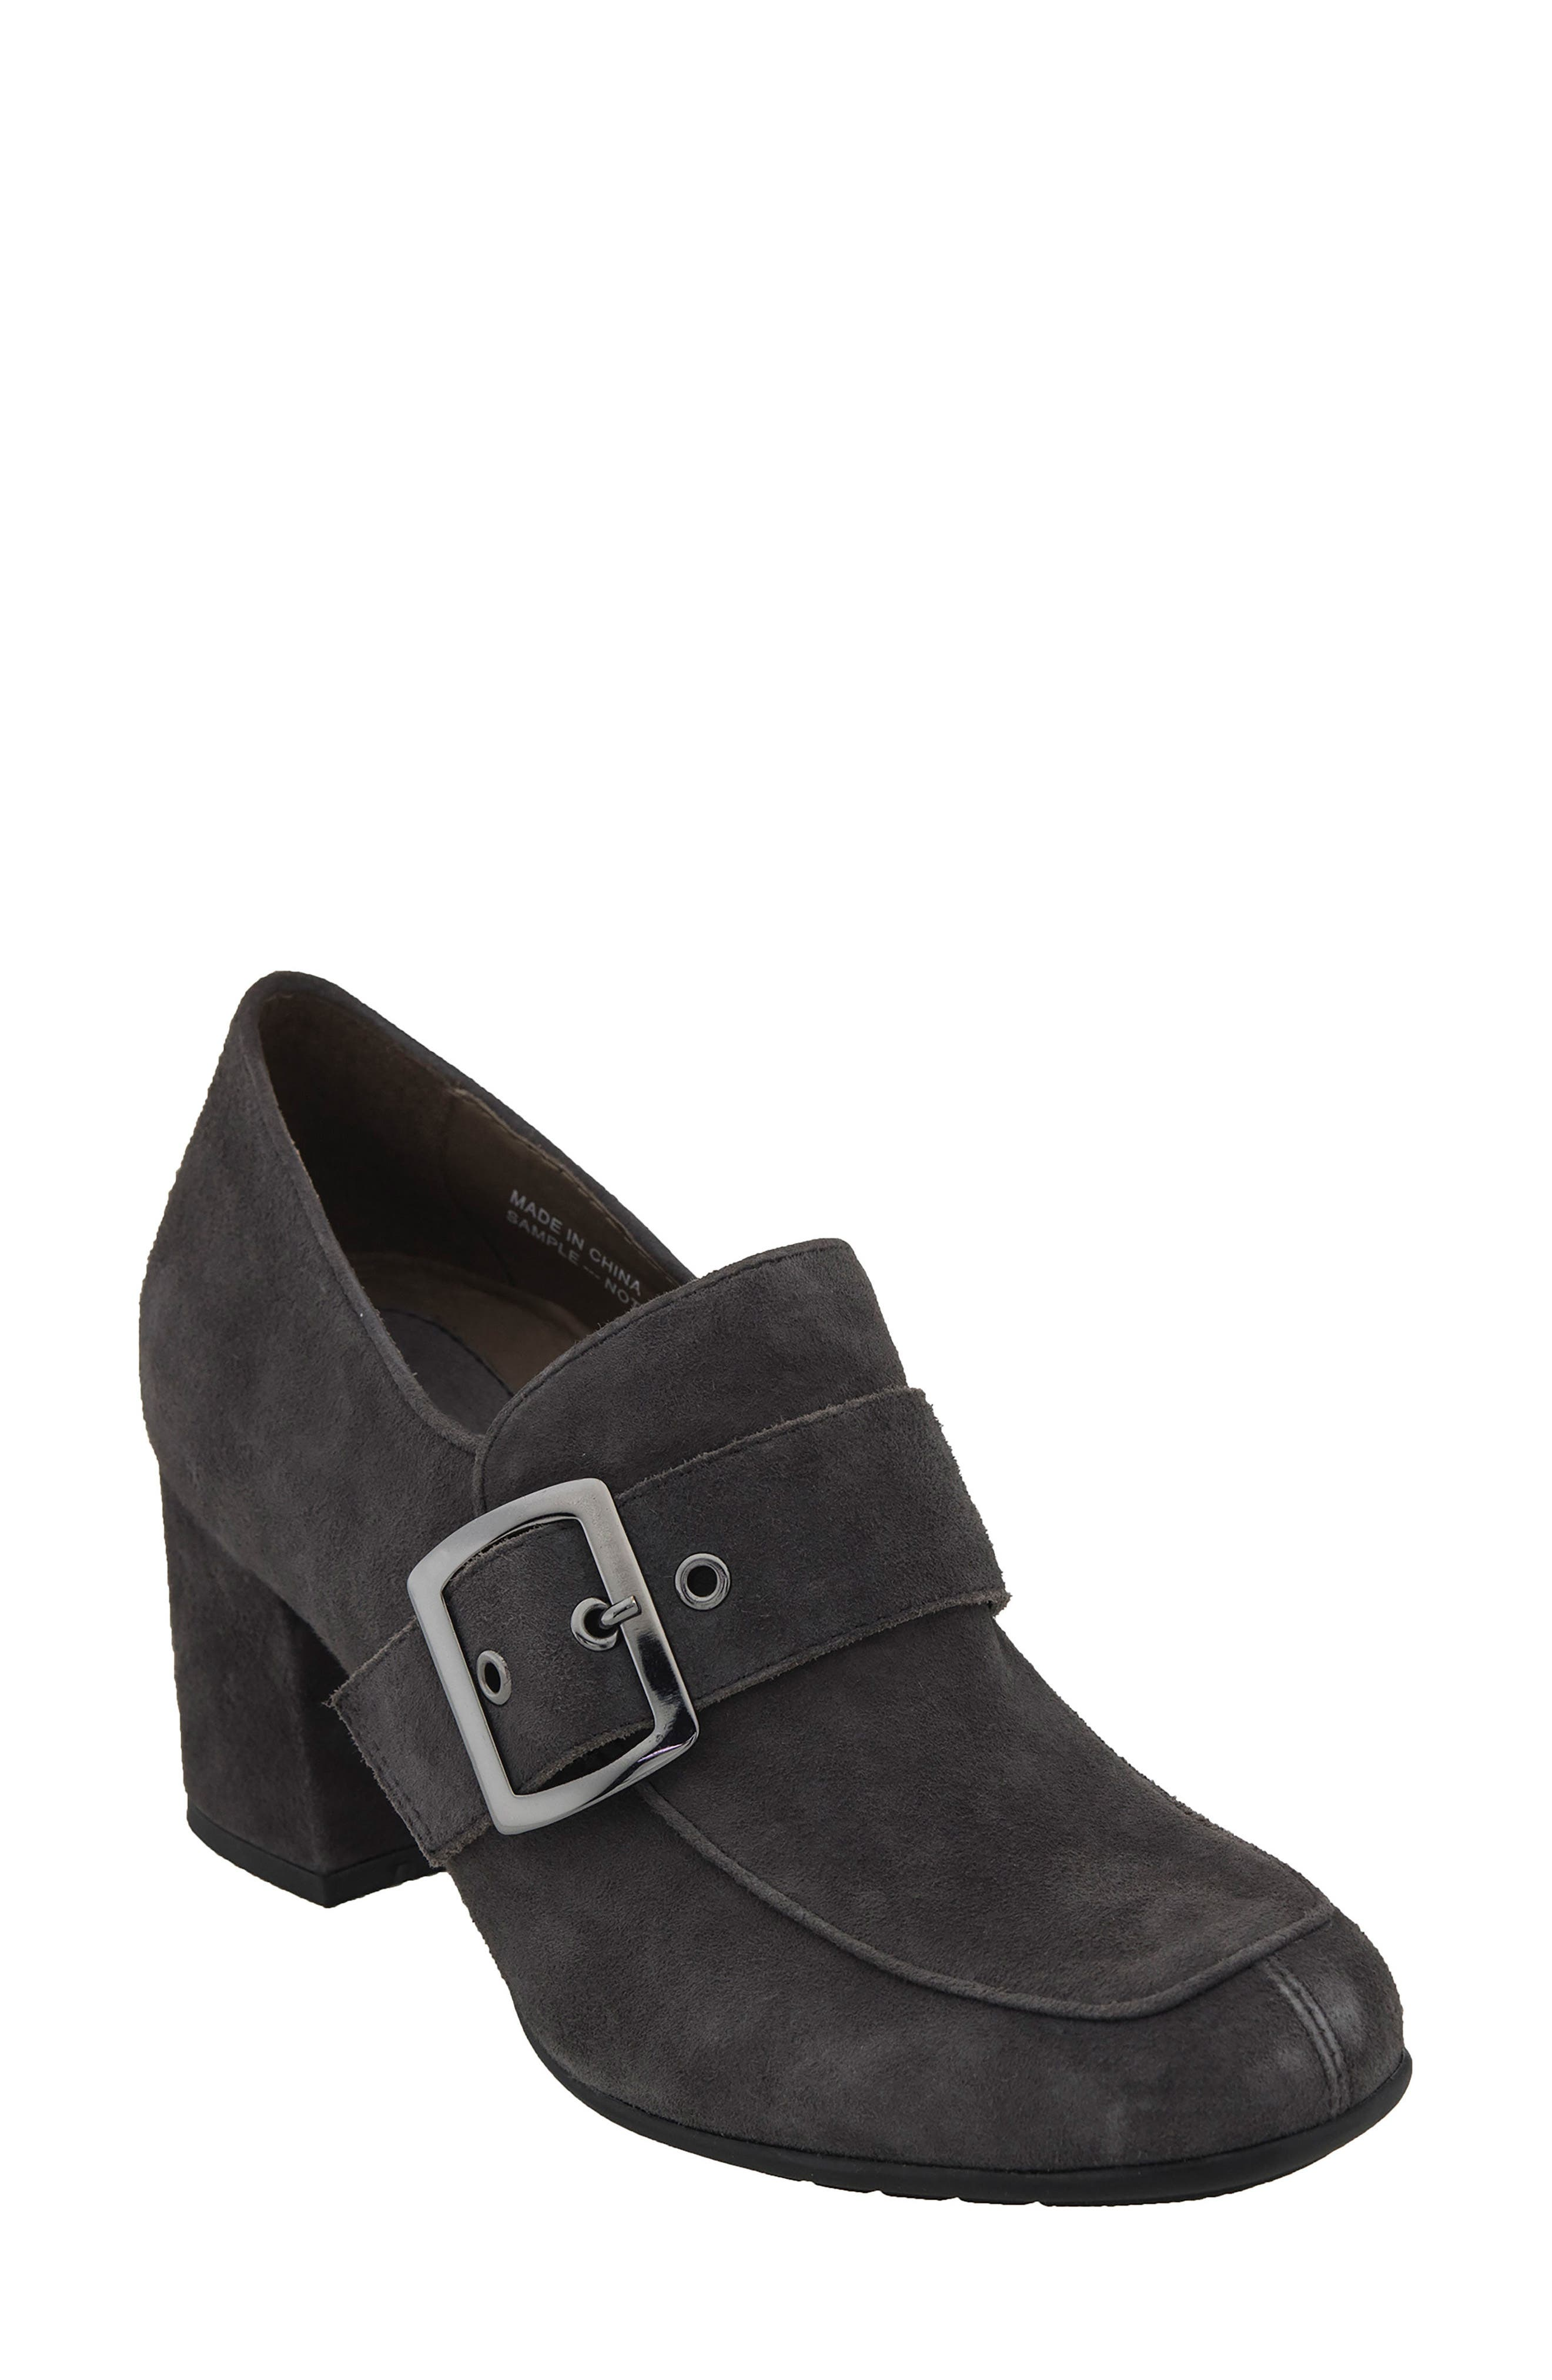 Main Image - Earthies® Rhea Buckle Strap Pump (Women)